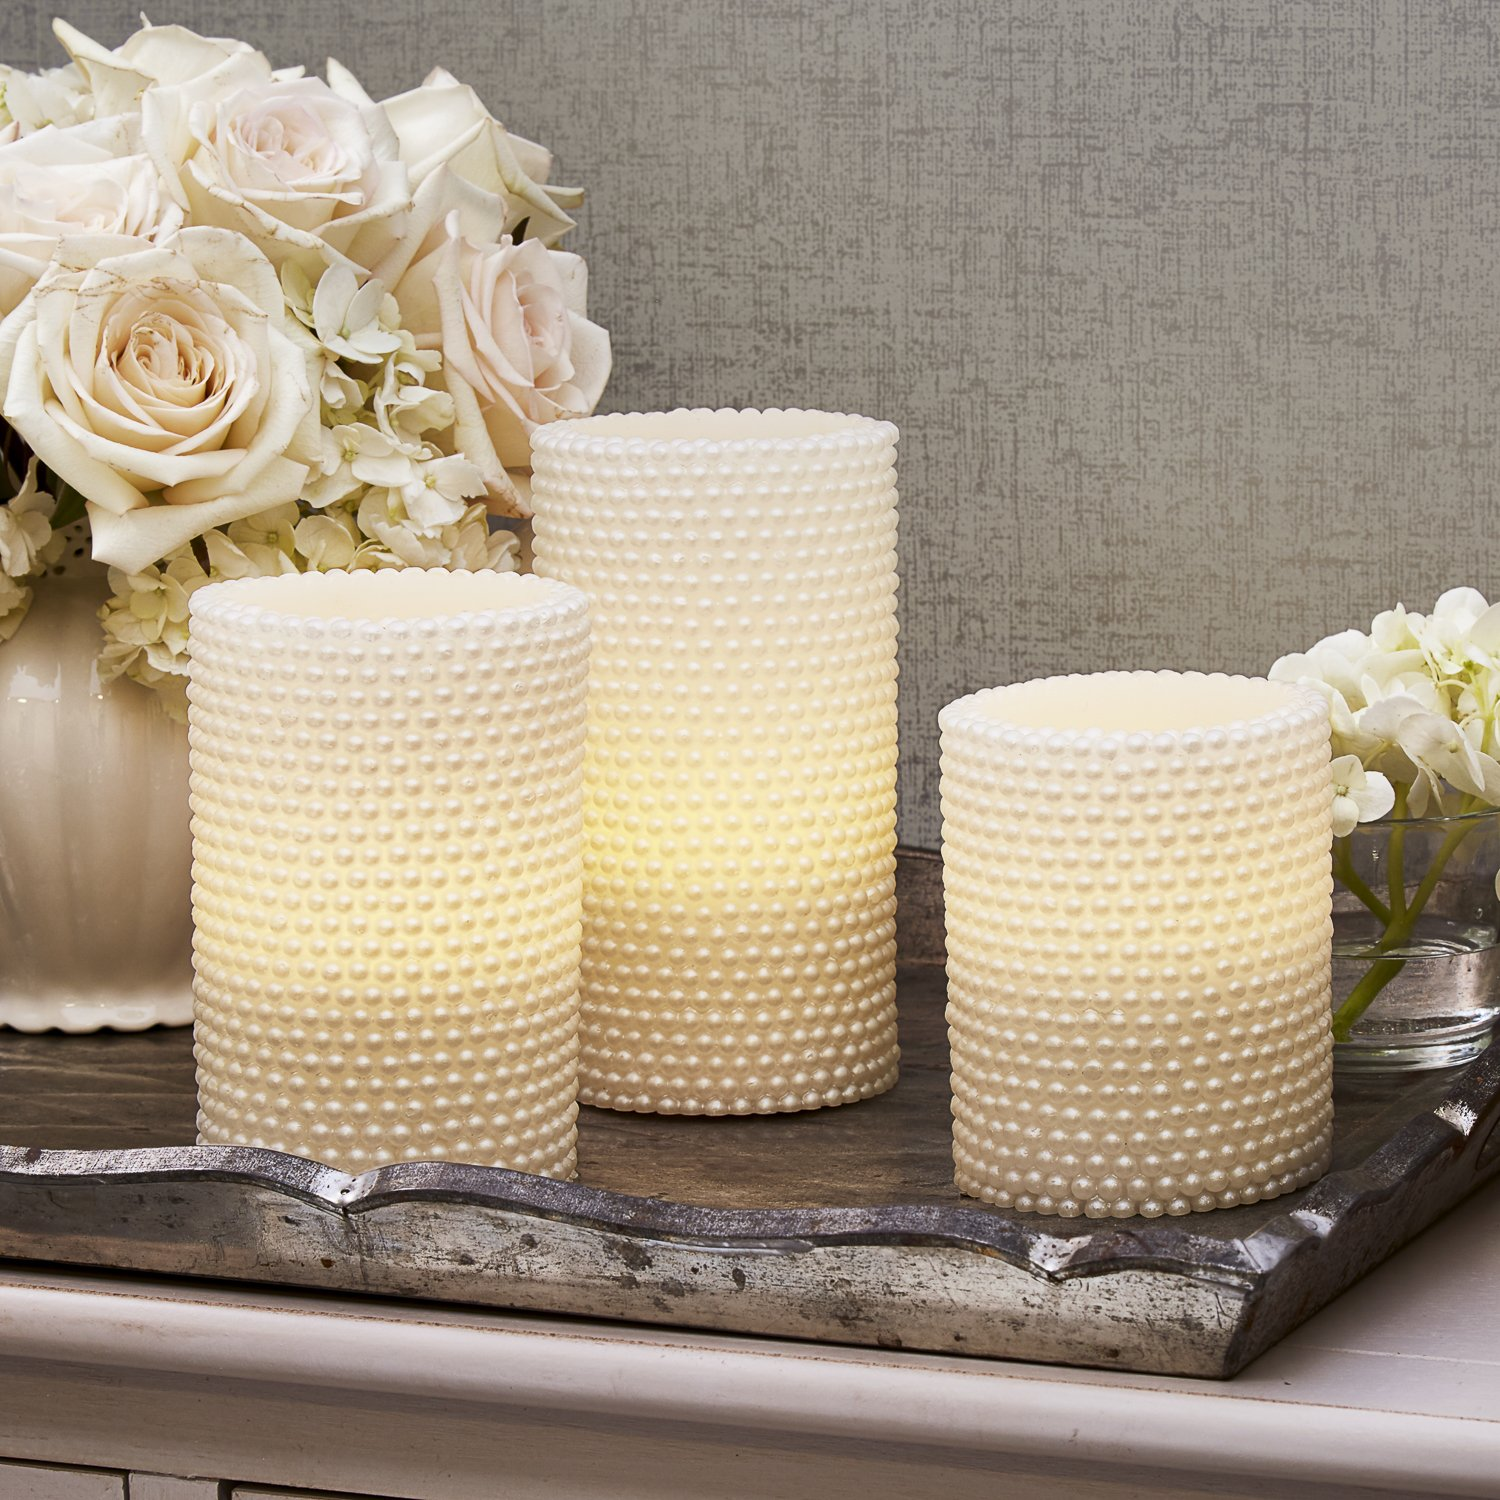 Decorative Textured Flameless Candles Set with Remote, Flickering Pearl Candle by LampLust, 4/8 Hr Timer, Real Wax, White LED Glow, Indoor use - Set of 3